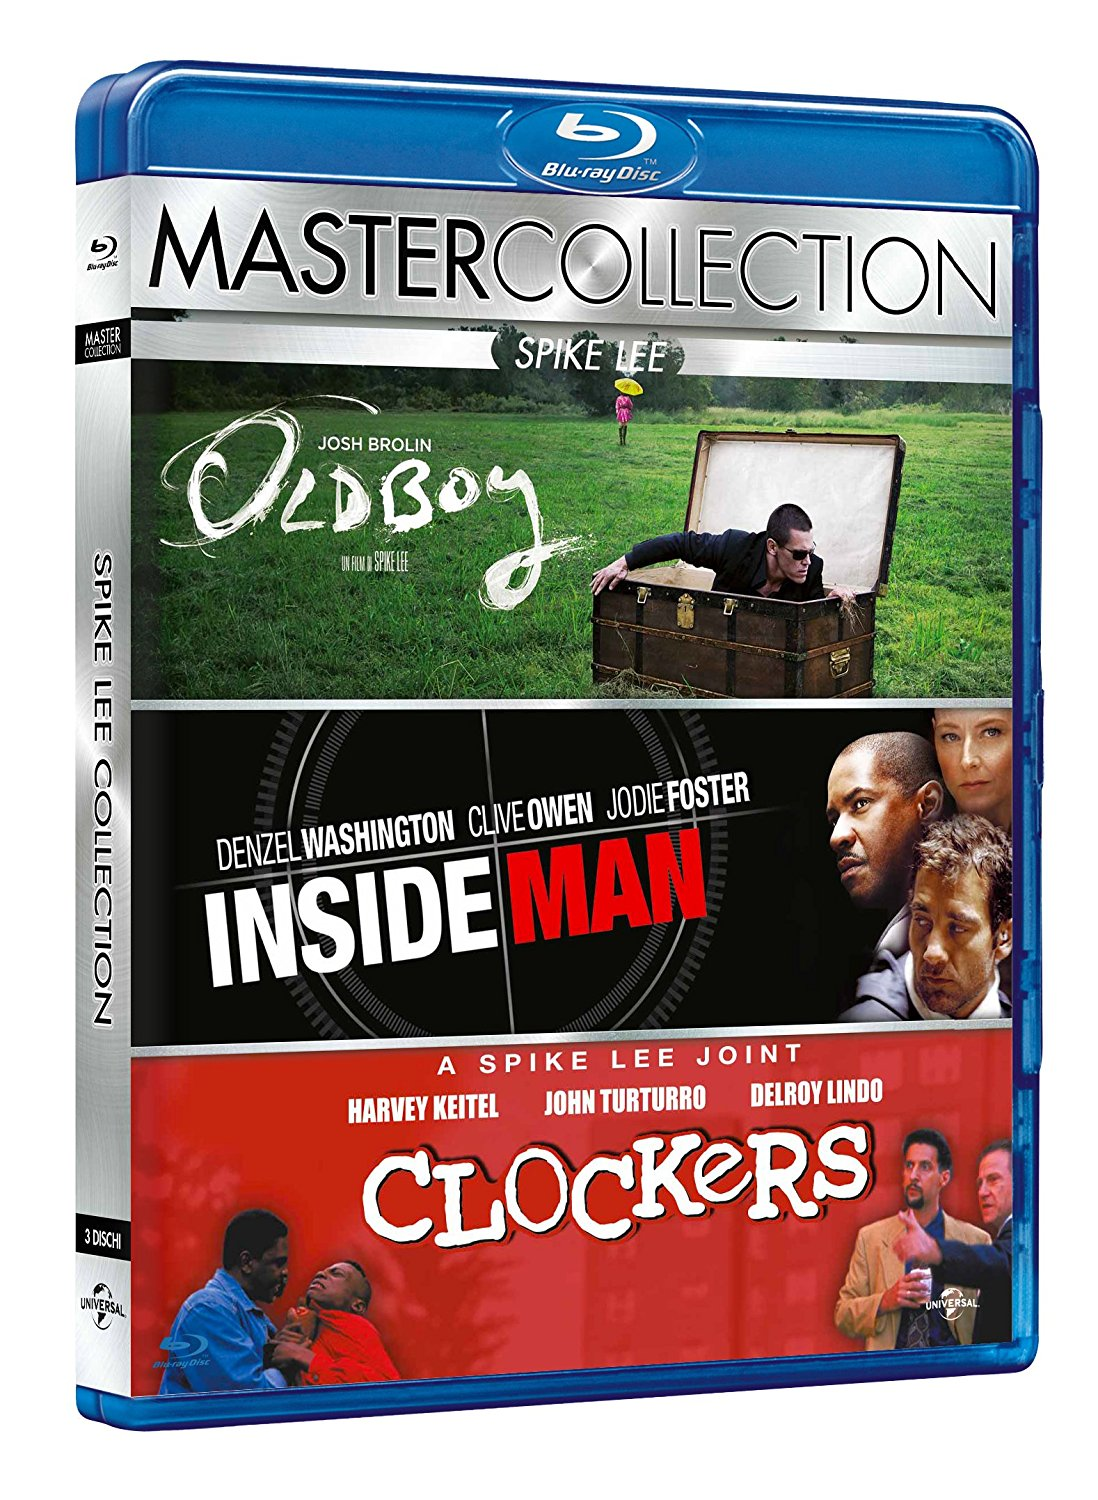 Spike Lee master collection: Clockers (1995) - Inside man (2006) - Old boy (2013)